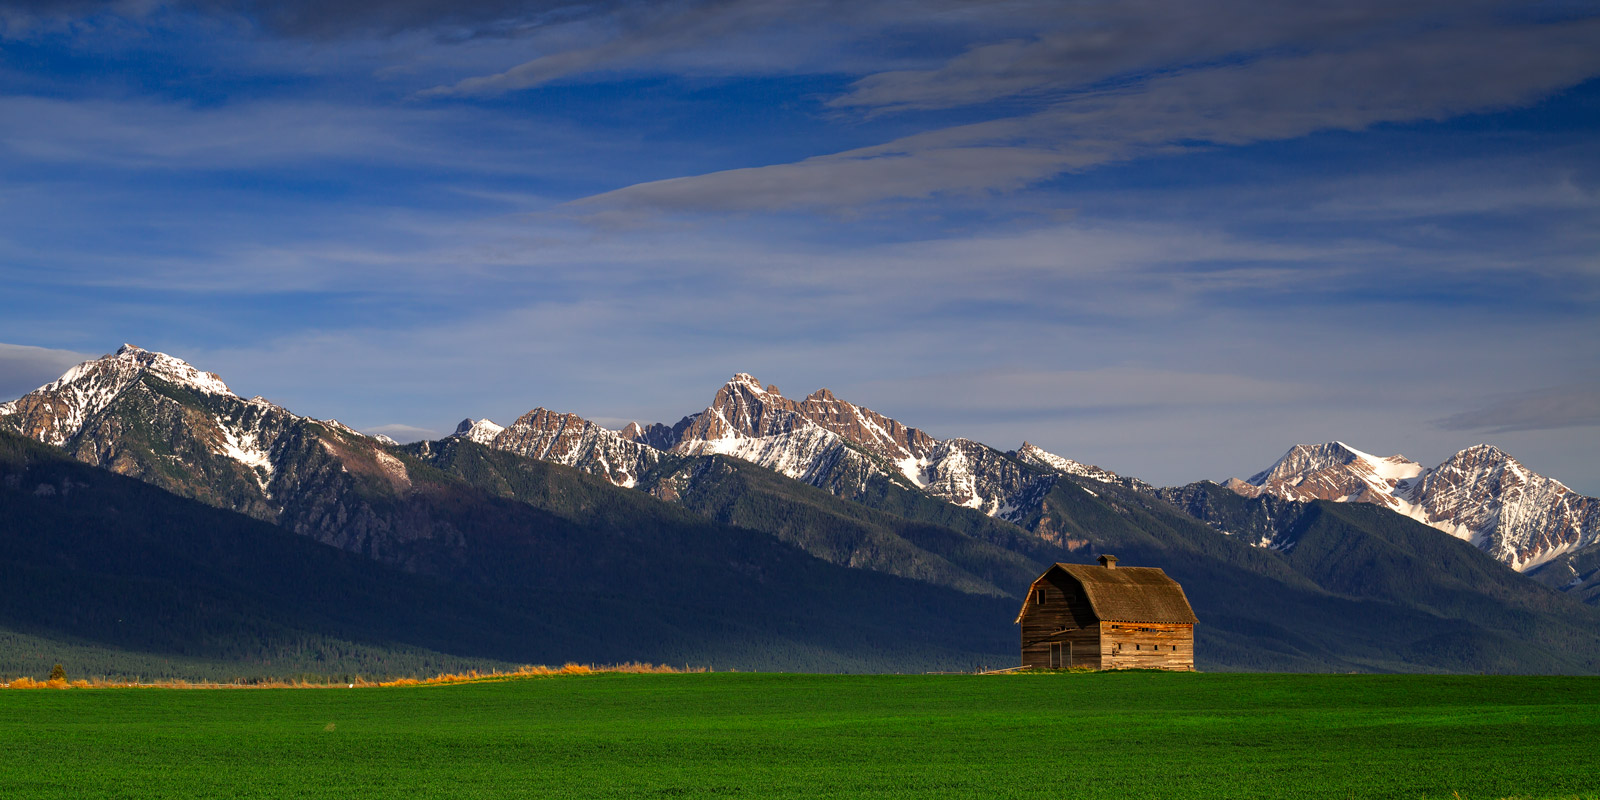 Montana, Mission Range, Mountain, Barn, limited edition, photograph, fine art, landscape, photo